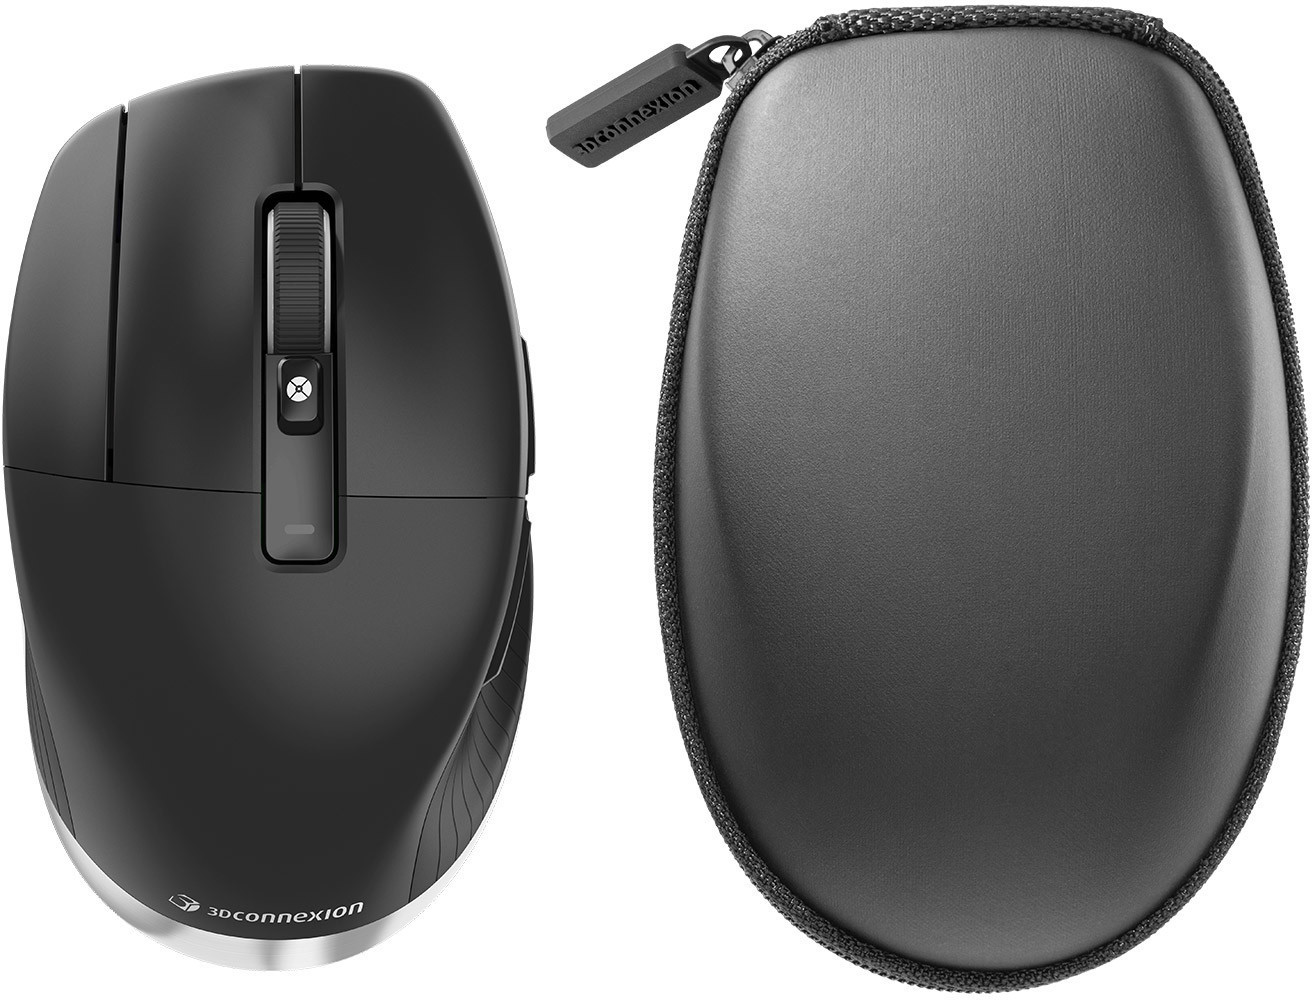 Image of 3Dconnexion CadMouse Pro Wireless Left